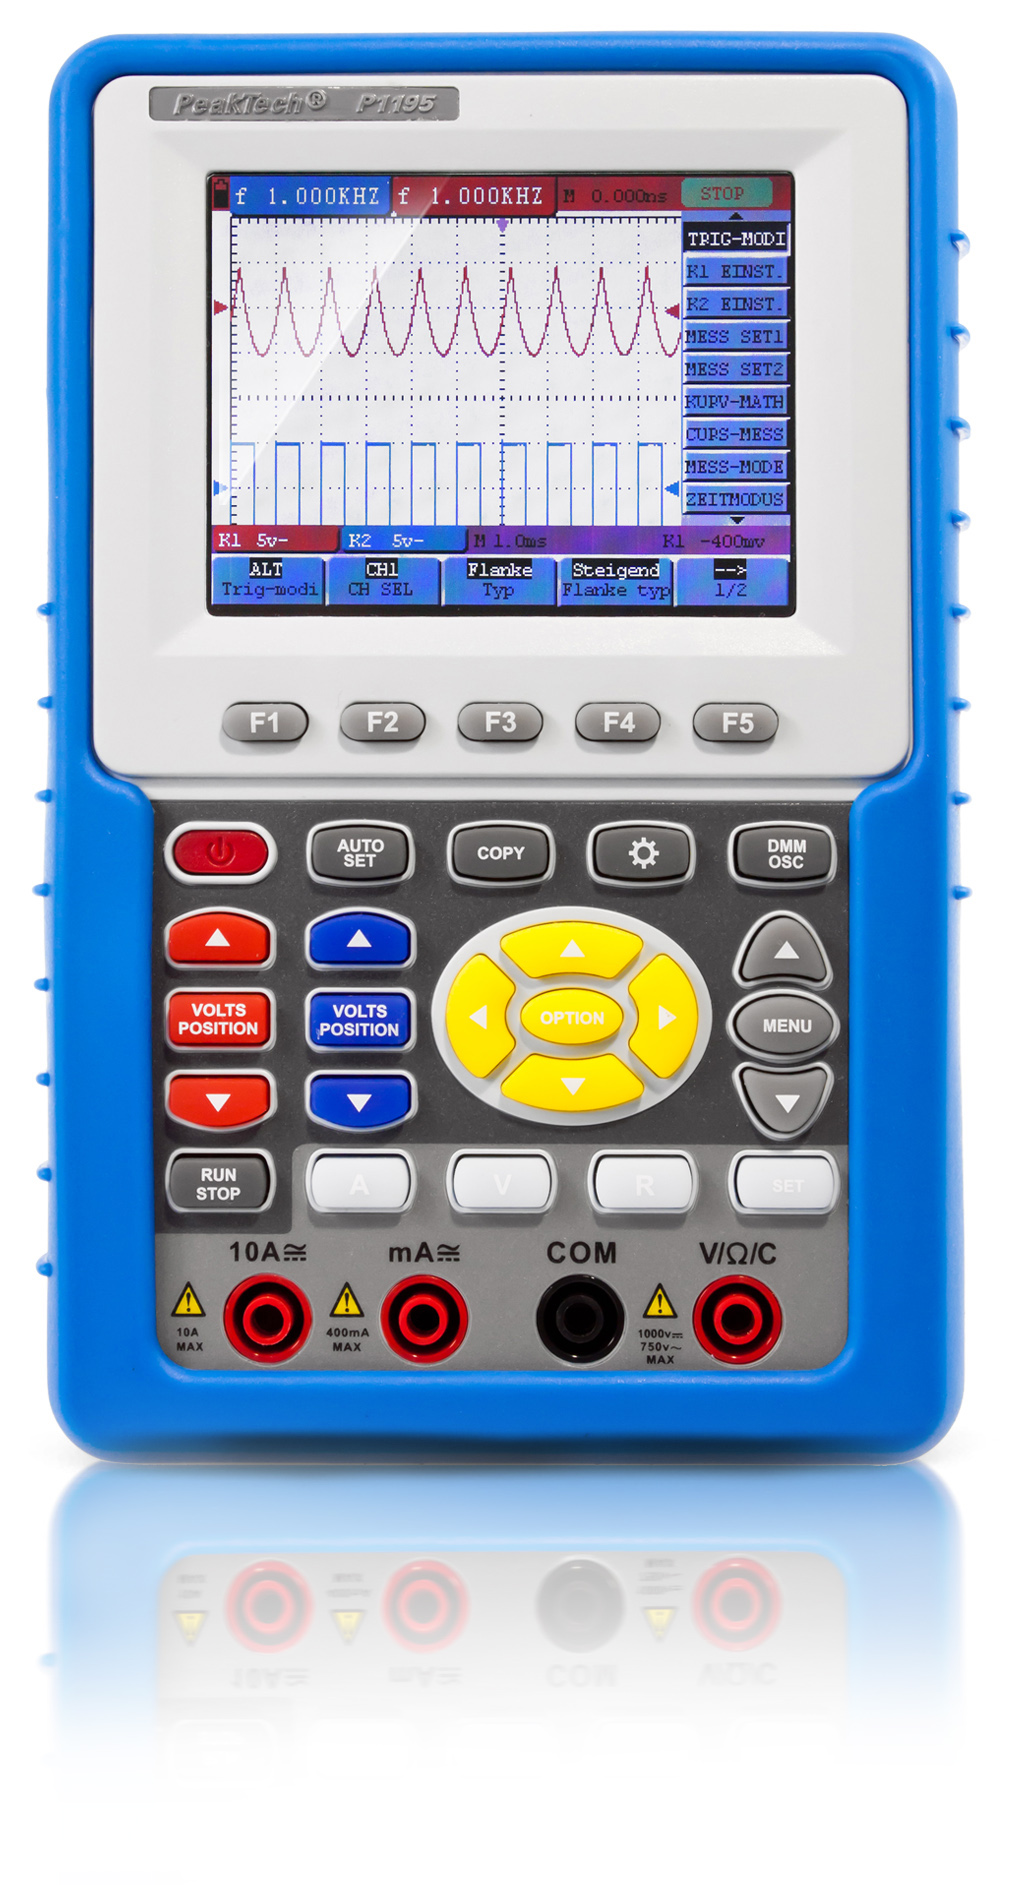 «PeakTech® P 1195» 100 MHz / 2 CH, 1 GS/s handheld oscilloscope